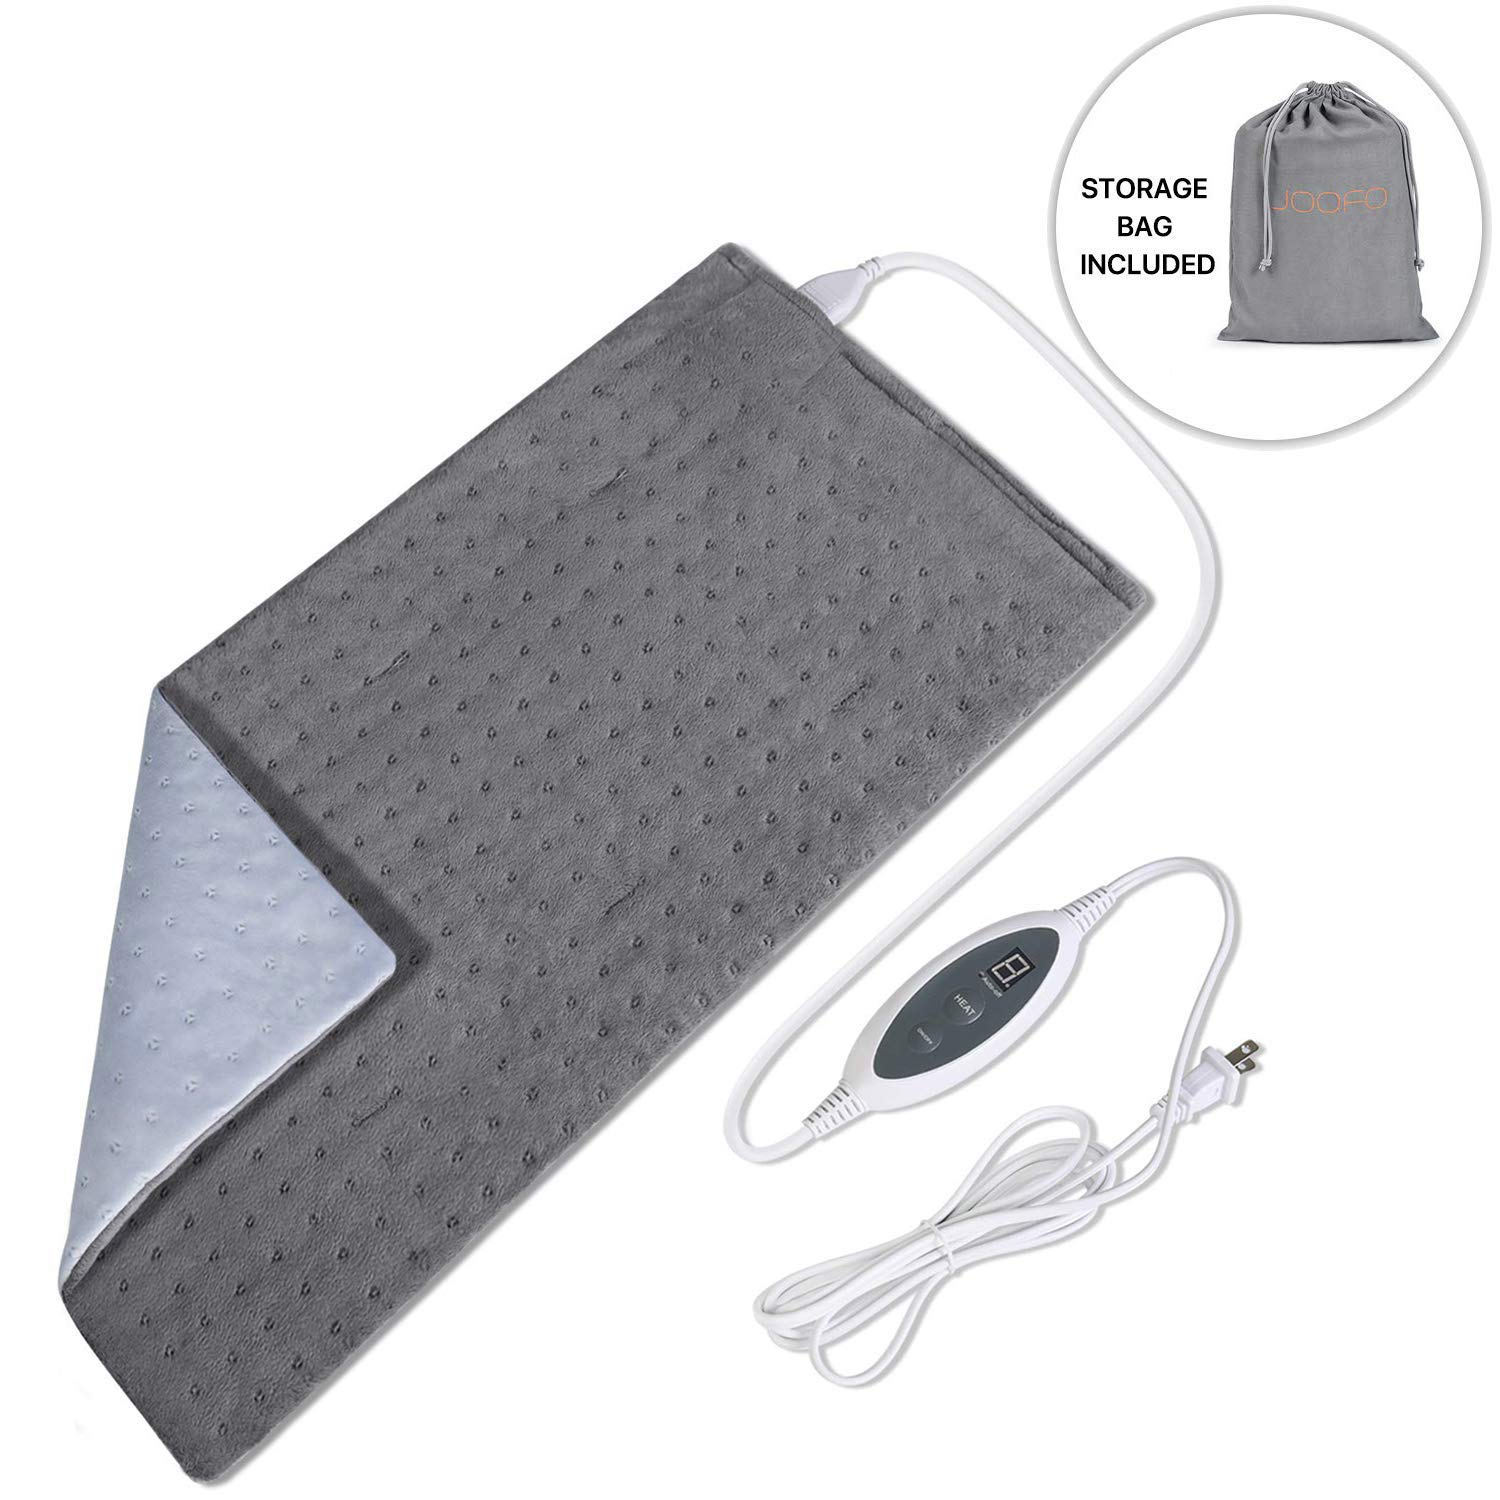 Joofo Heating Pad for Back Pain and Cramps Relief with Fast-Heating & 4 Temperature Settings, Moist Heat Therapy Option, Auto-Off and Machine Washable, 12'' x 24'' Ultra-Soft Heat Therapy Pad by JooFo